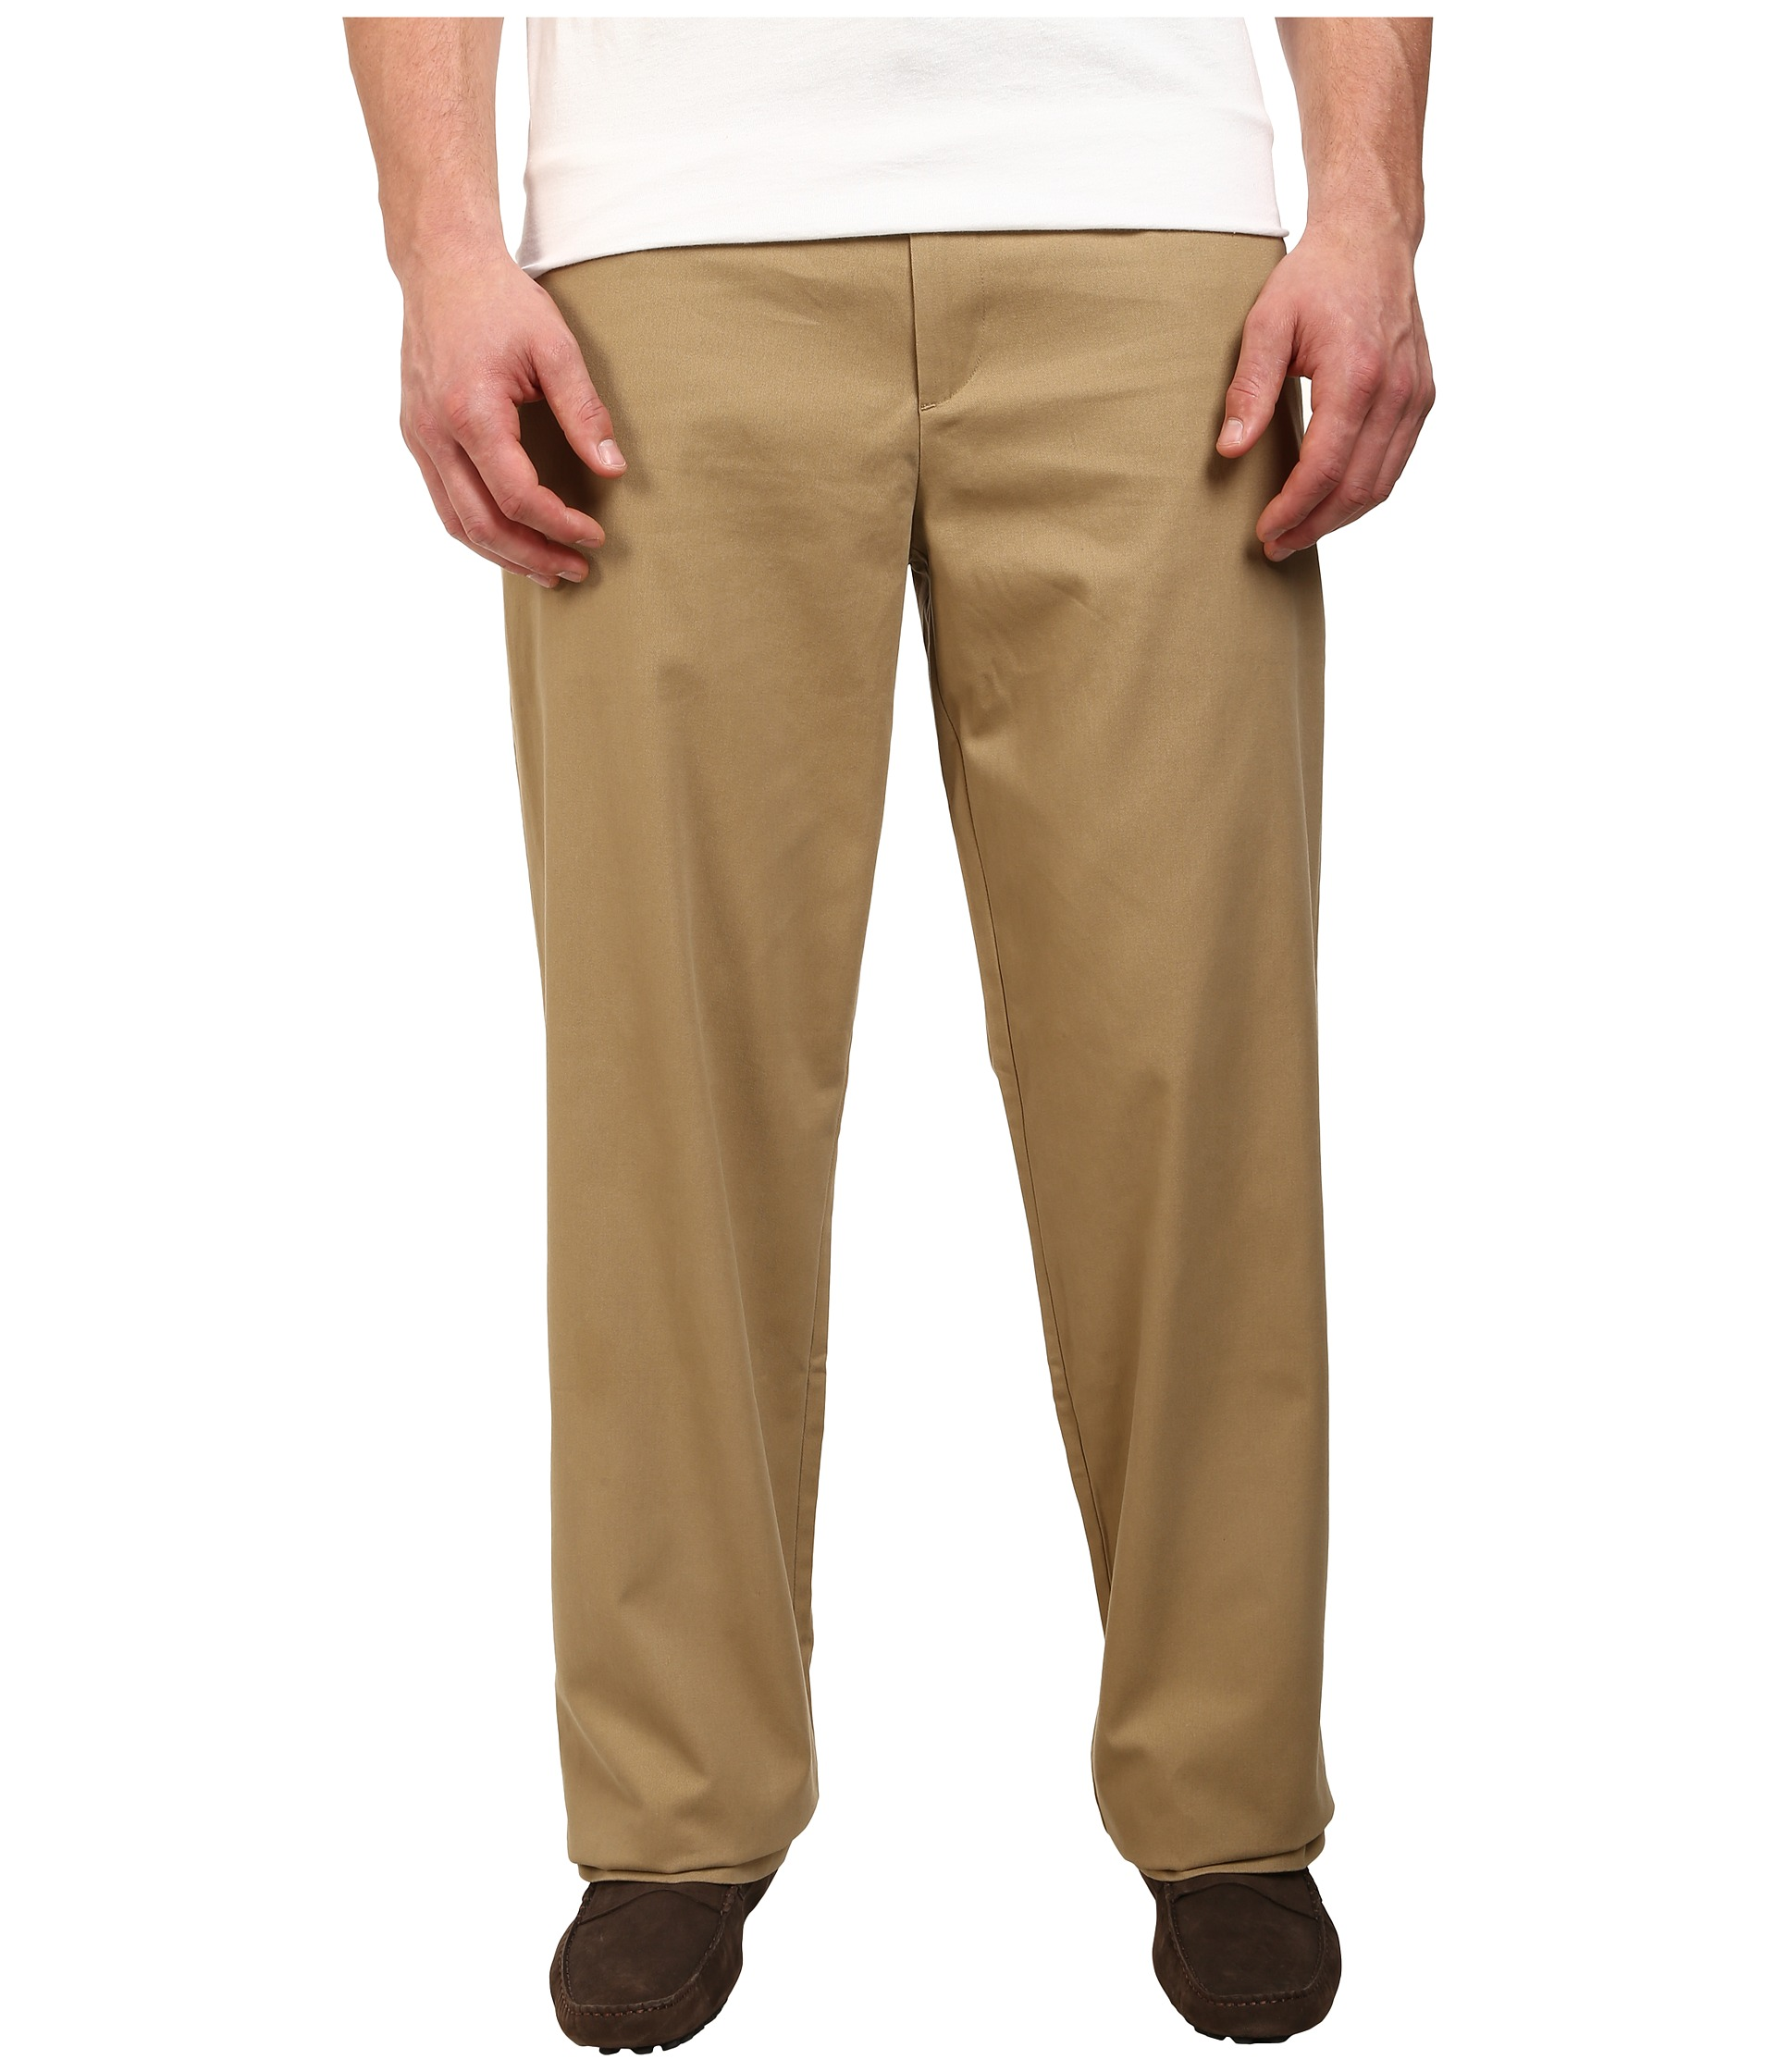 Big Mens Khaki Pants. Copper Cove Big and Tall Cargo Side Elastic Waist Pants. Big men's vintage wash American made Big and Tall slim fit canvas work pants with button. big mens khaki pants – Wholesale- SYT New Arrival Mens Casual Business Pant Stretch.